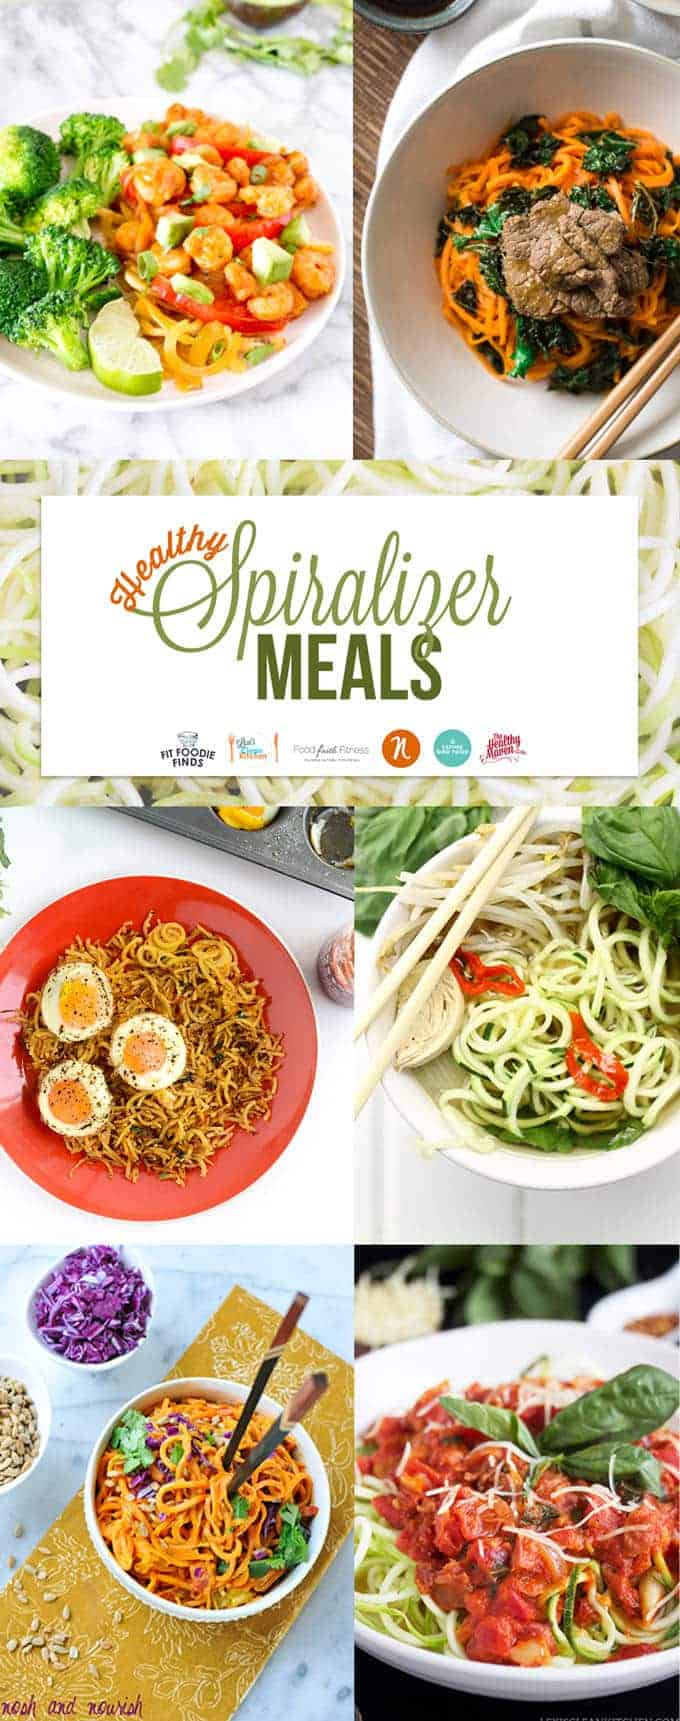 Healthy Paleo Spiralizer Meals Roundup | Foodfaithfitness.com | @FoodFaithFit